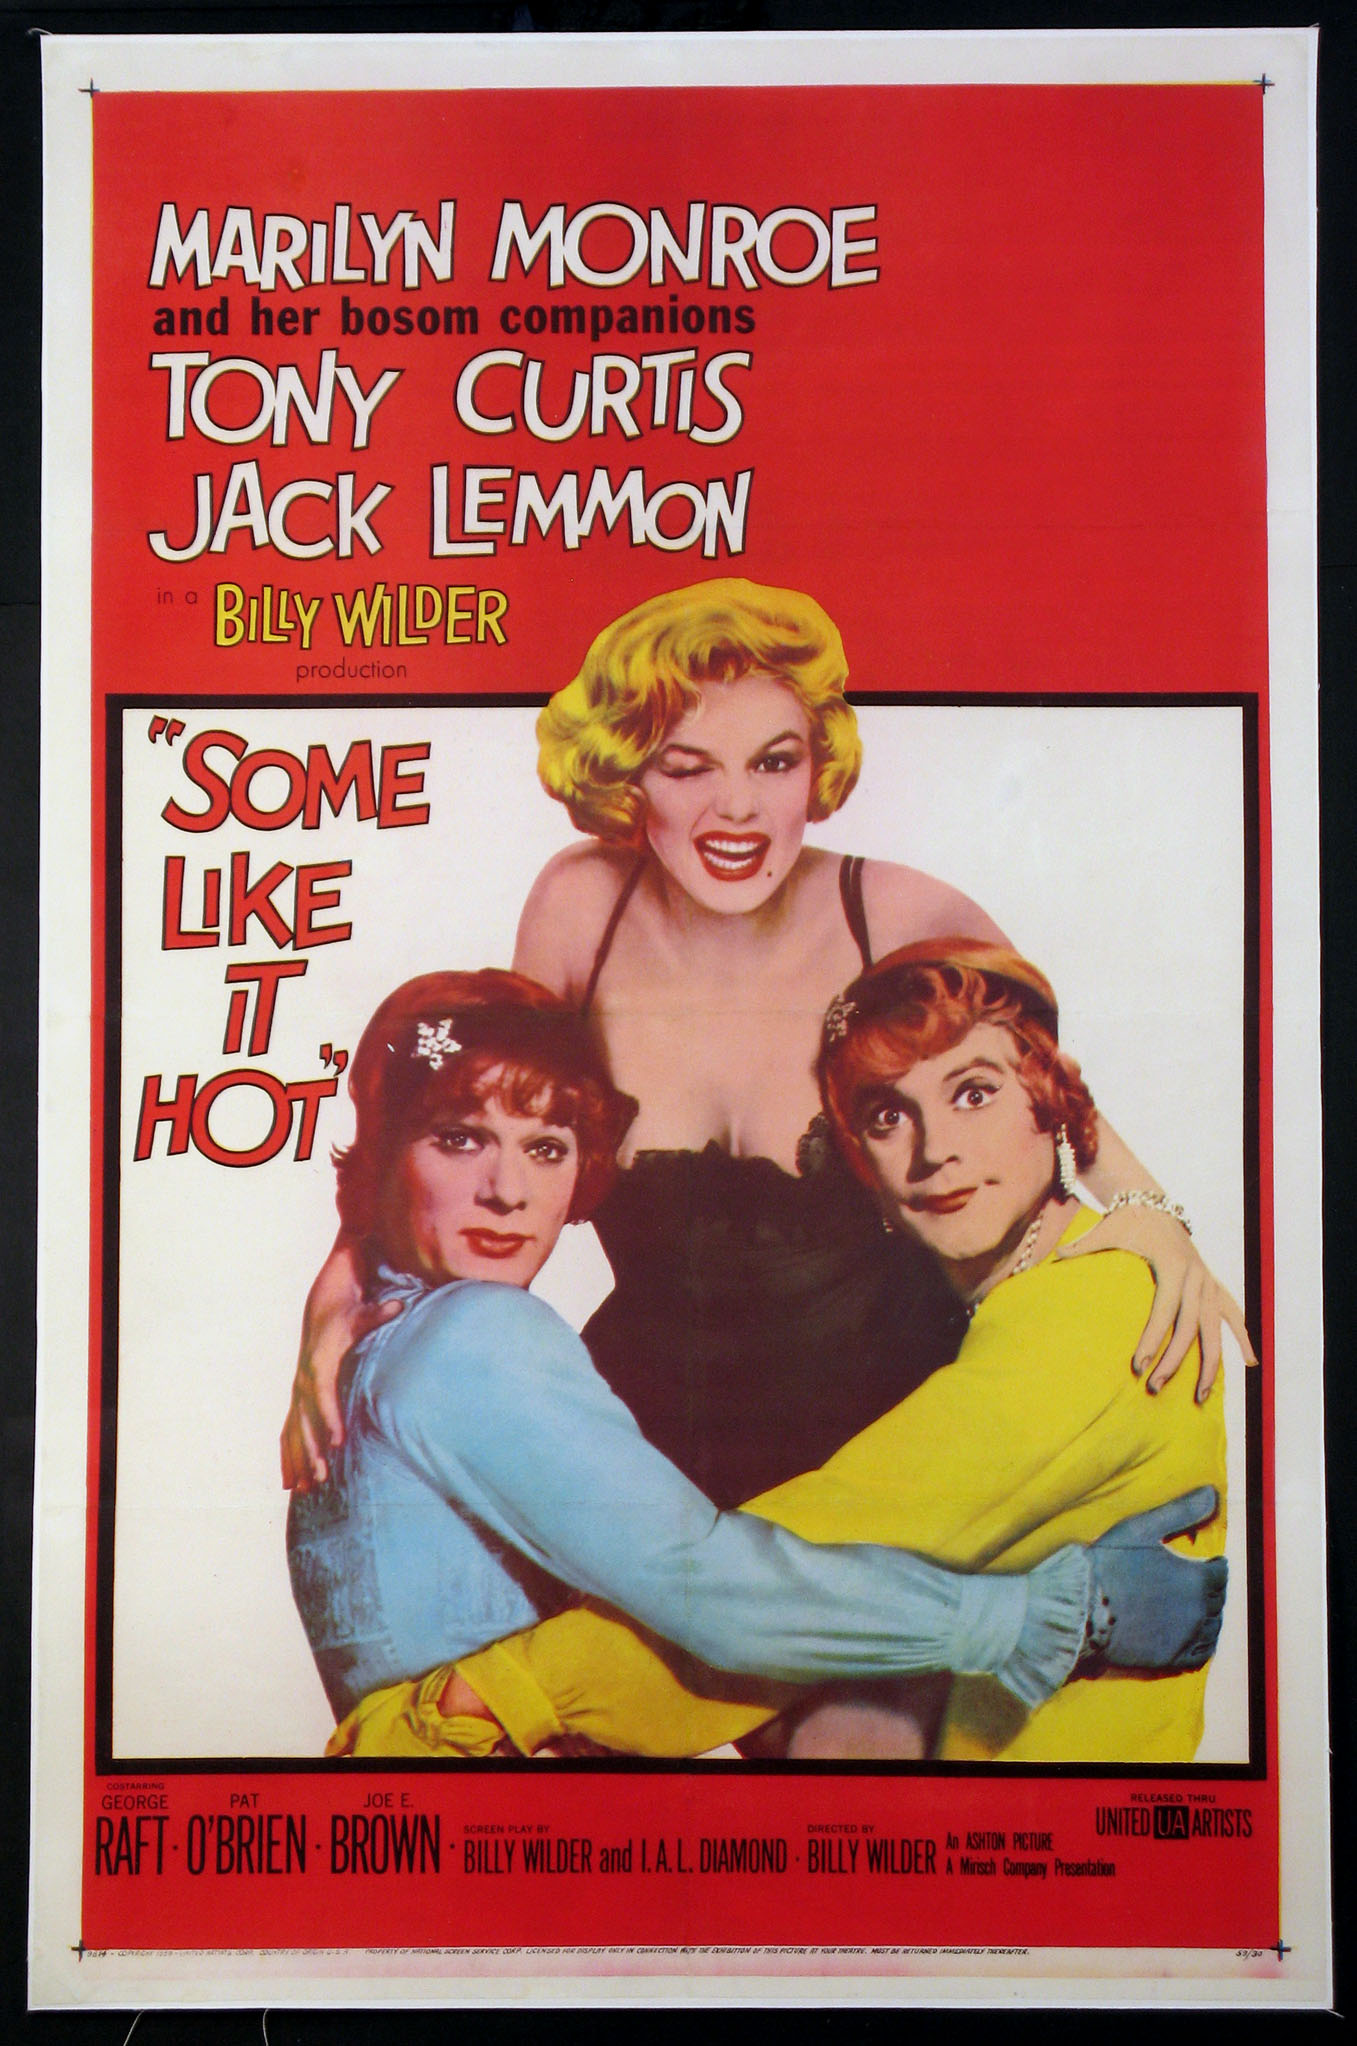 SOME LIKE IT HOT @ FilmPosters.com